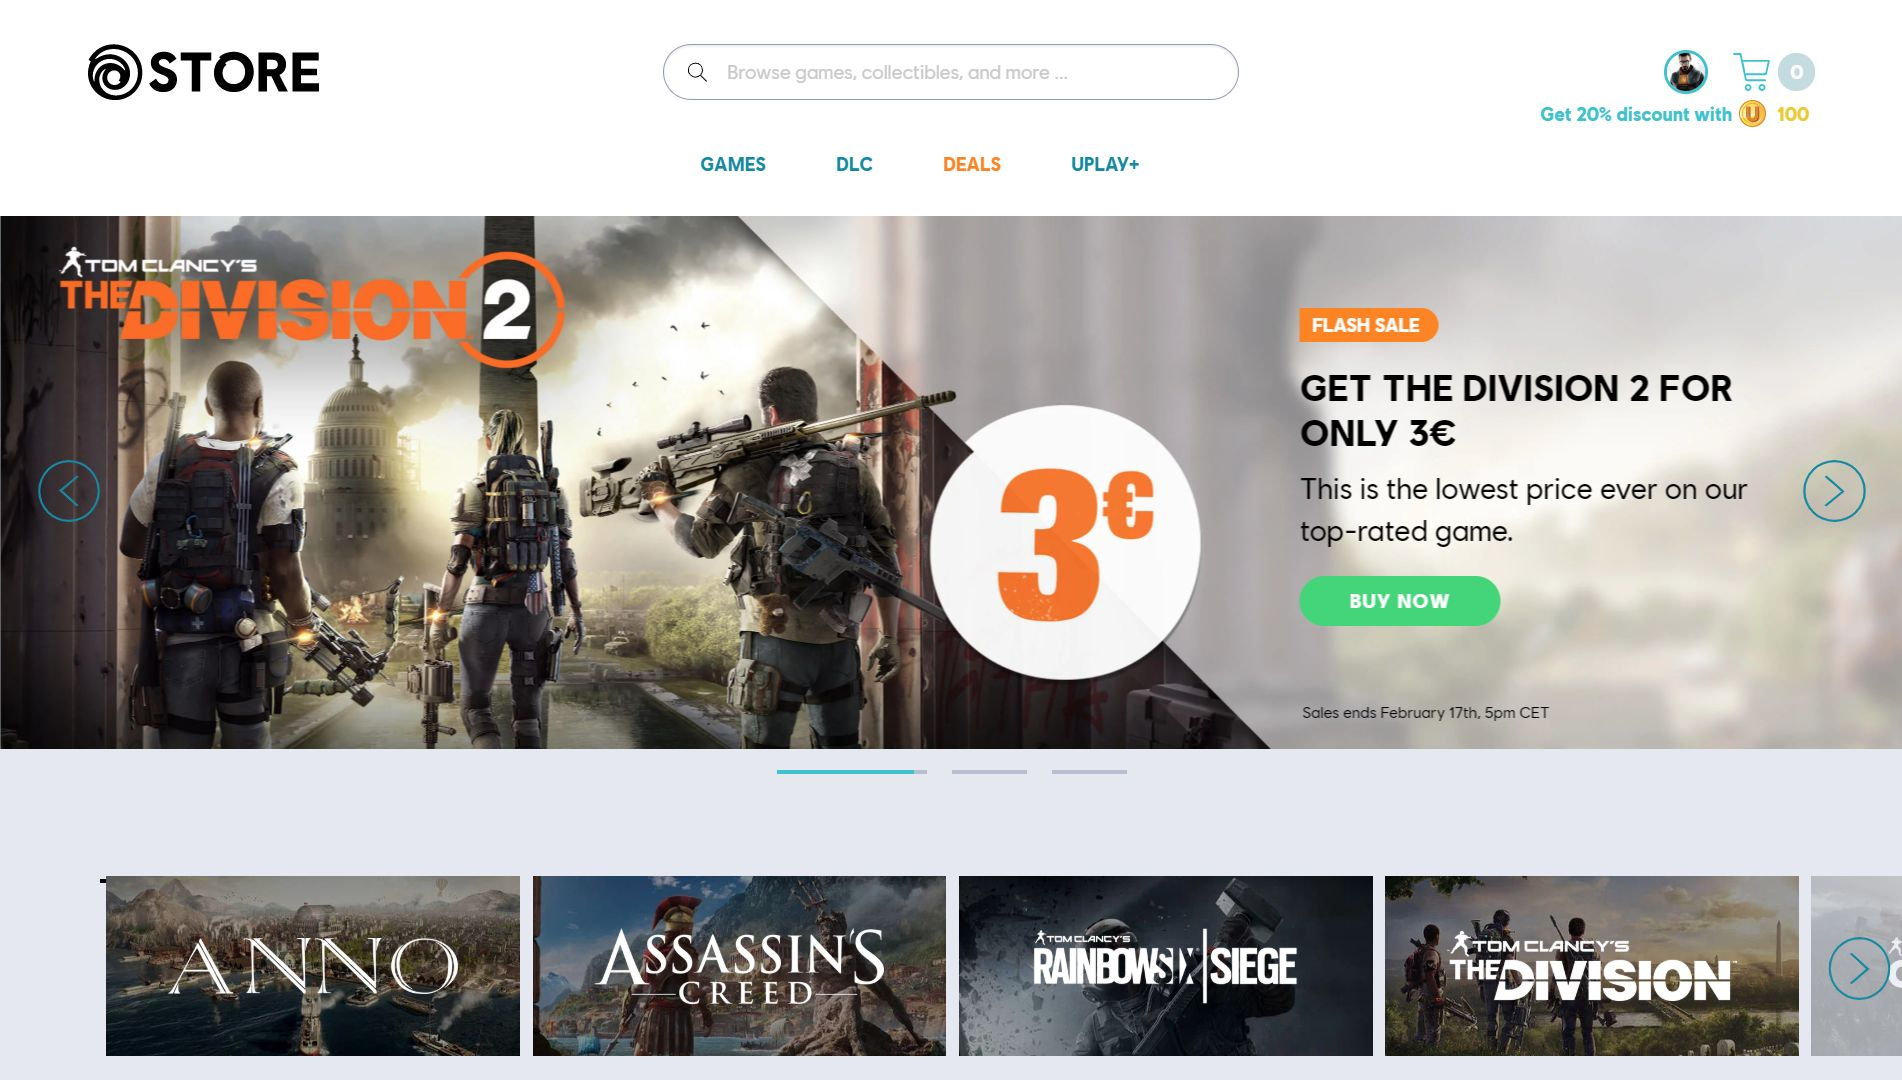 The Division 2 Price